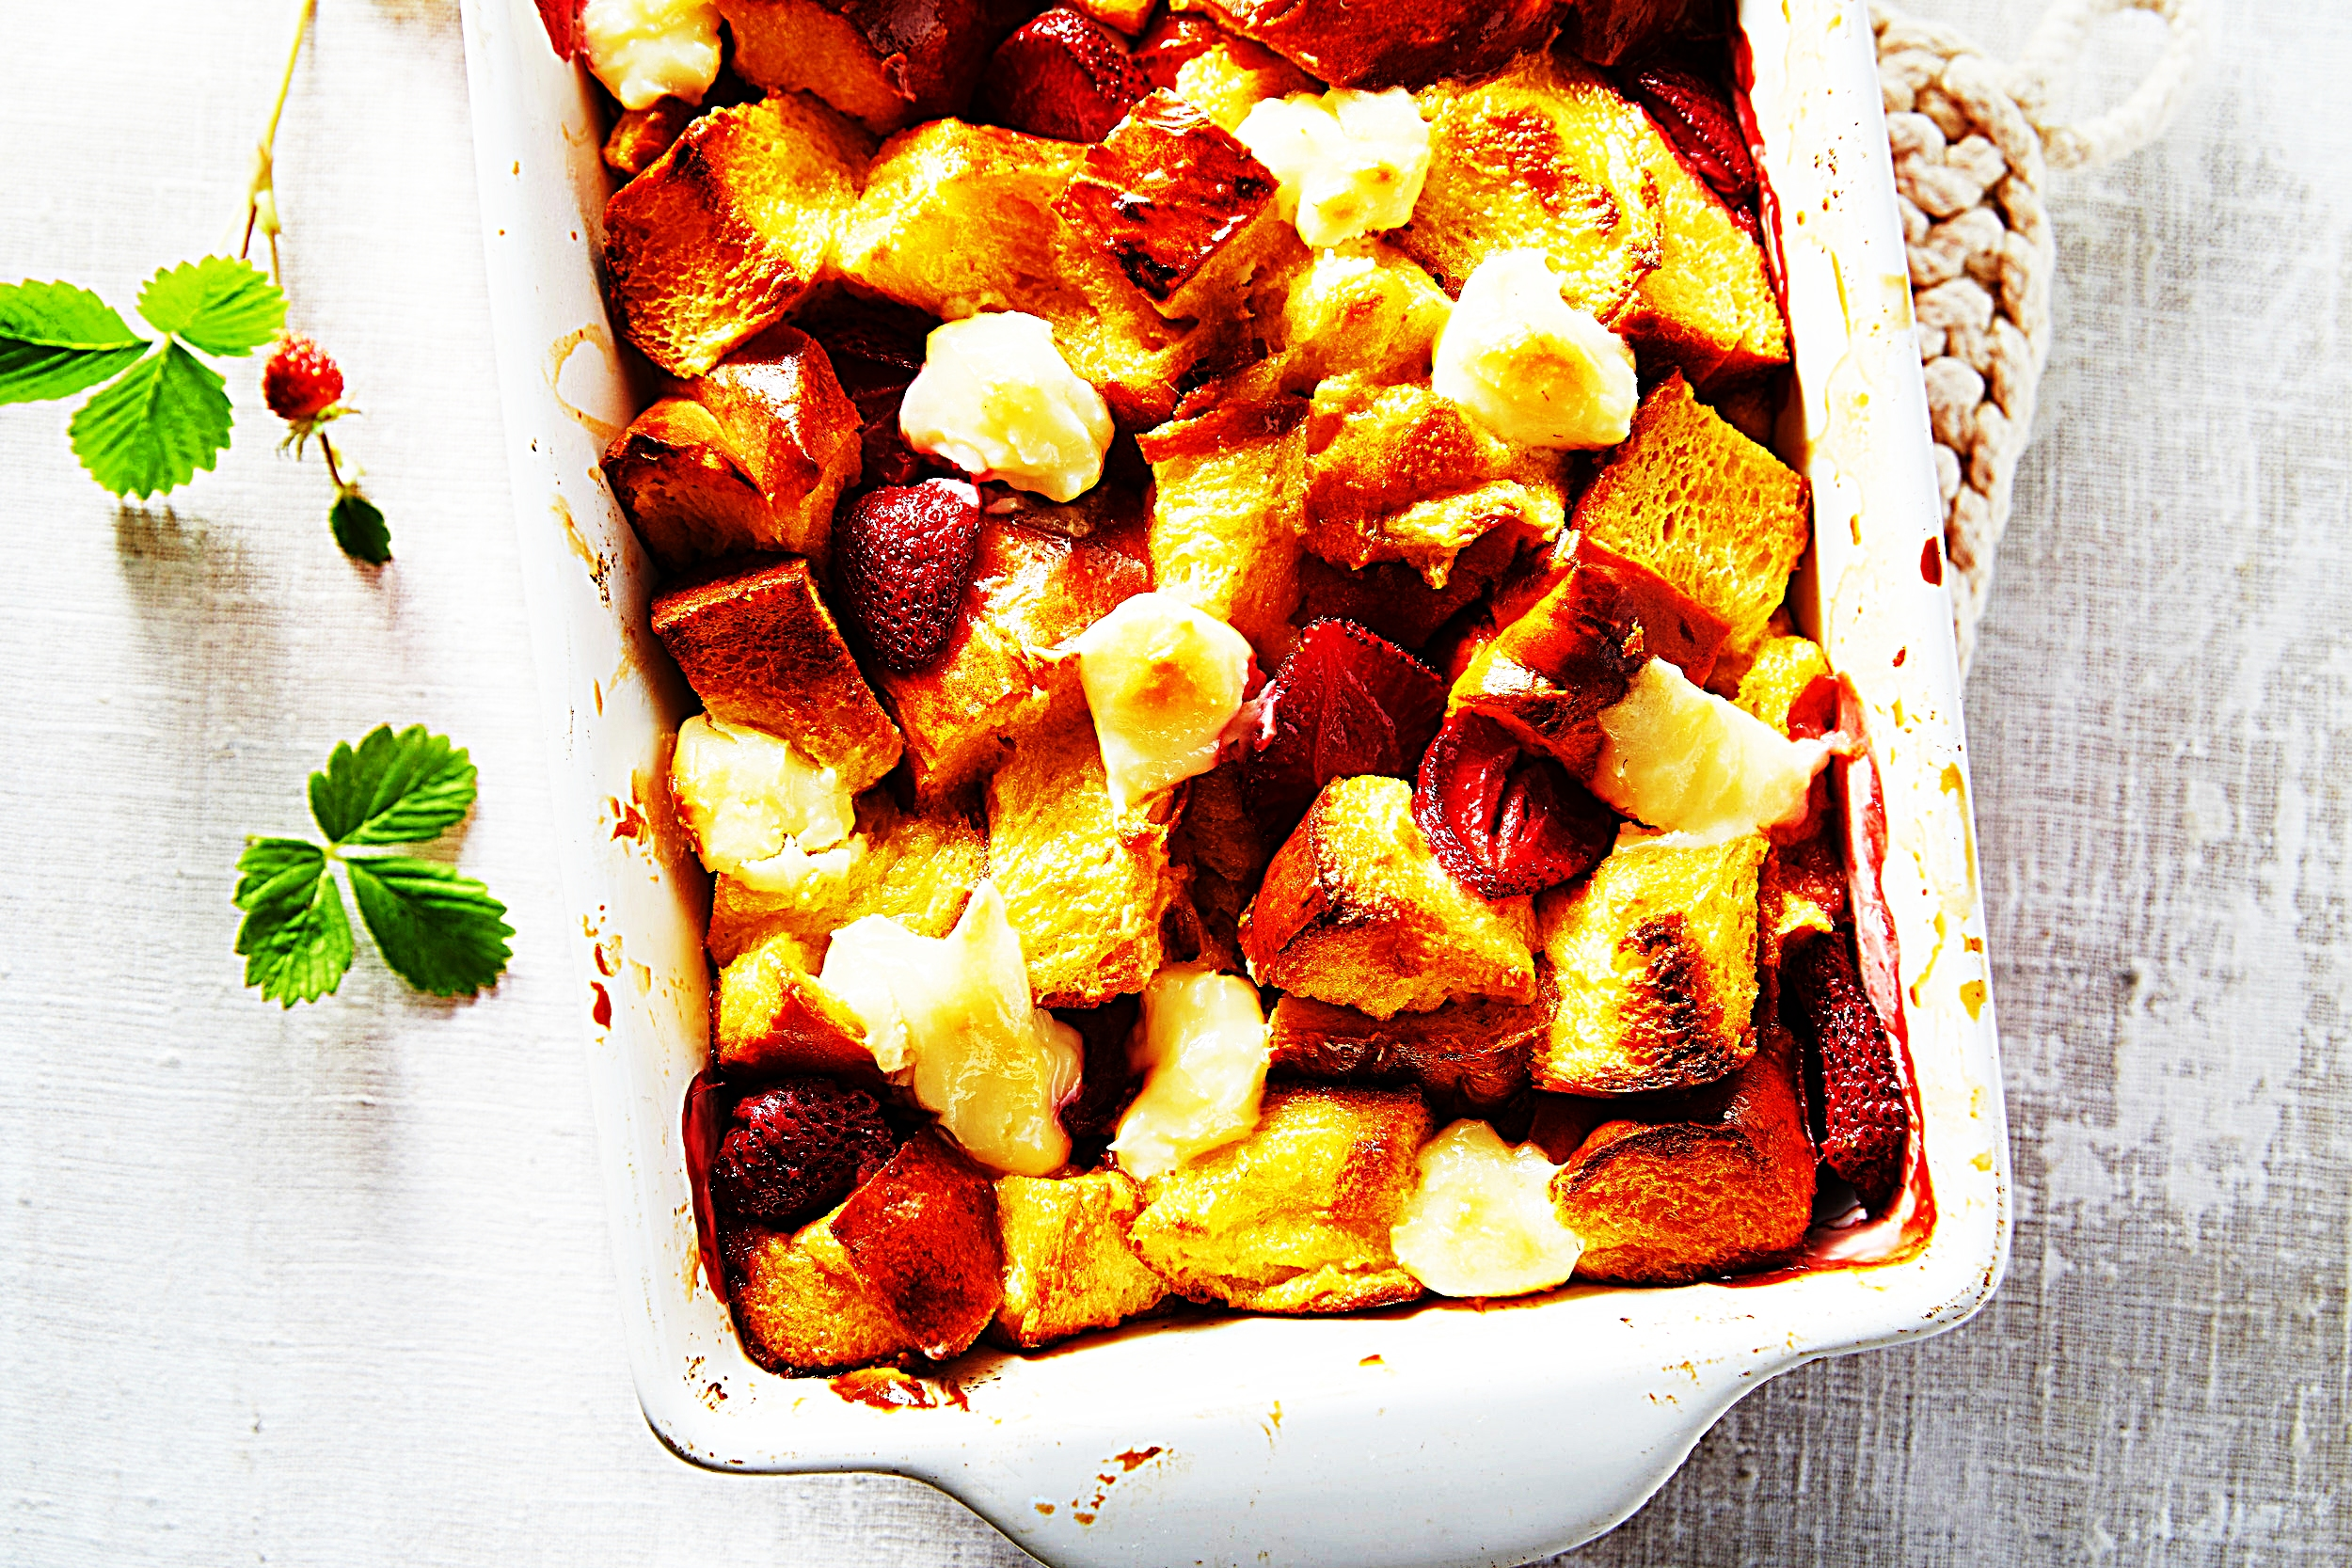 Stupid-Easy Recipe for Strawberry Cheesecake Baked French Toast Casserole (#1 Top-Rated)